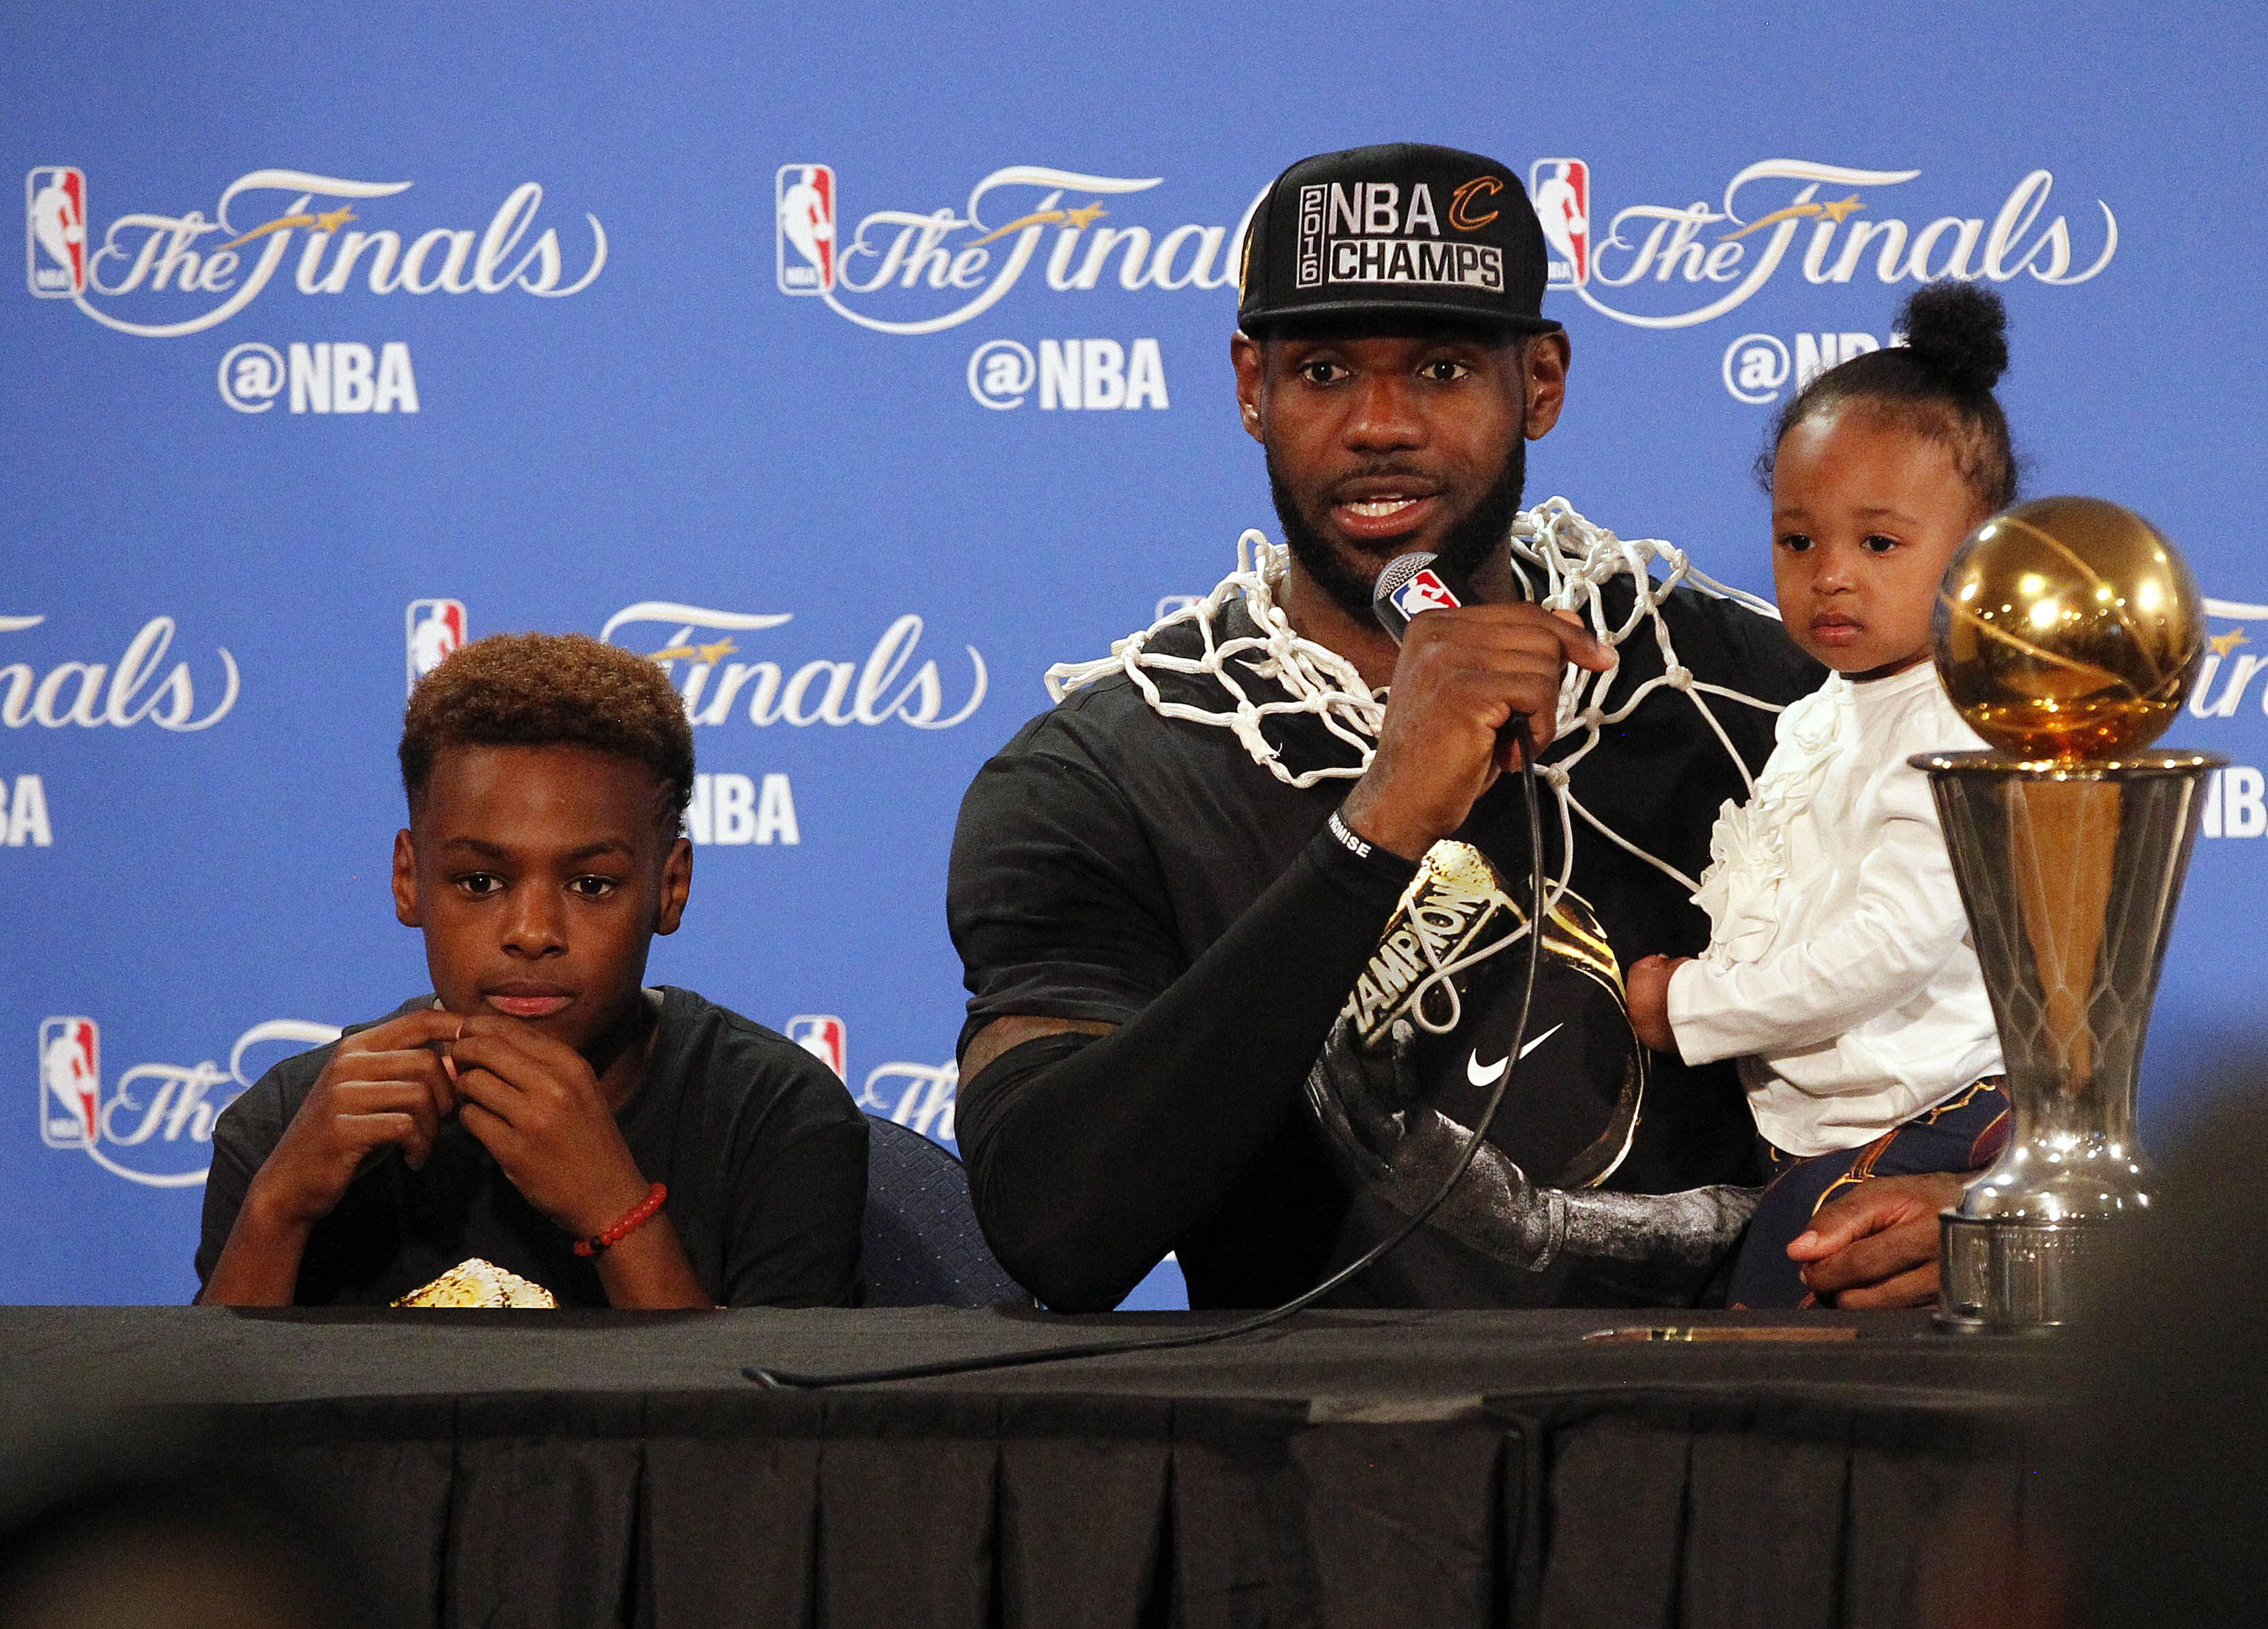 5 teams we want to see LeBron James and LeBron James Jr. play for